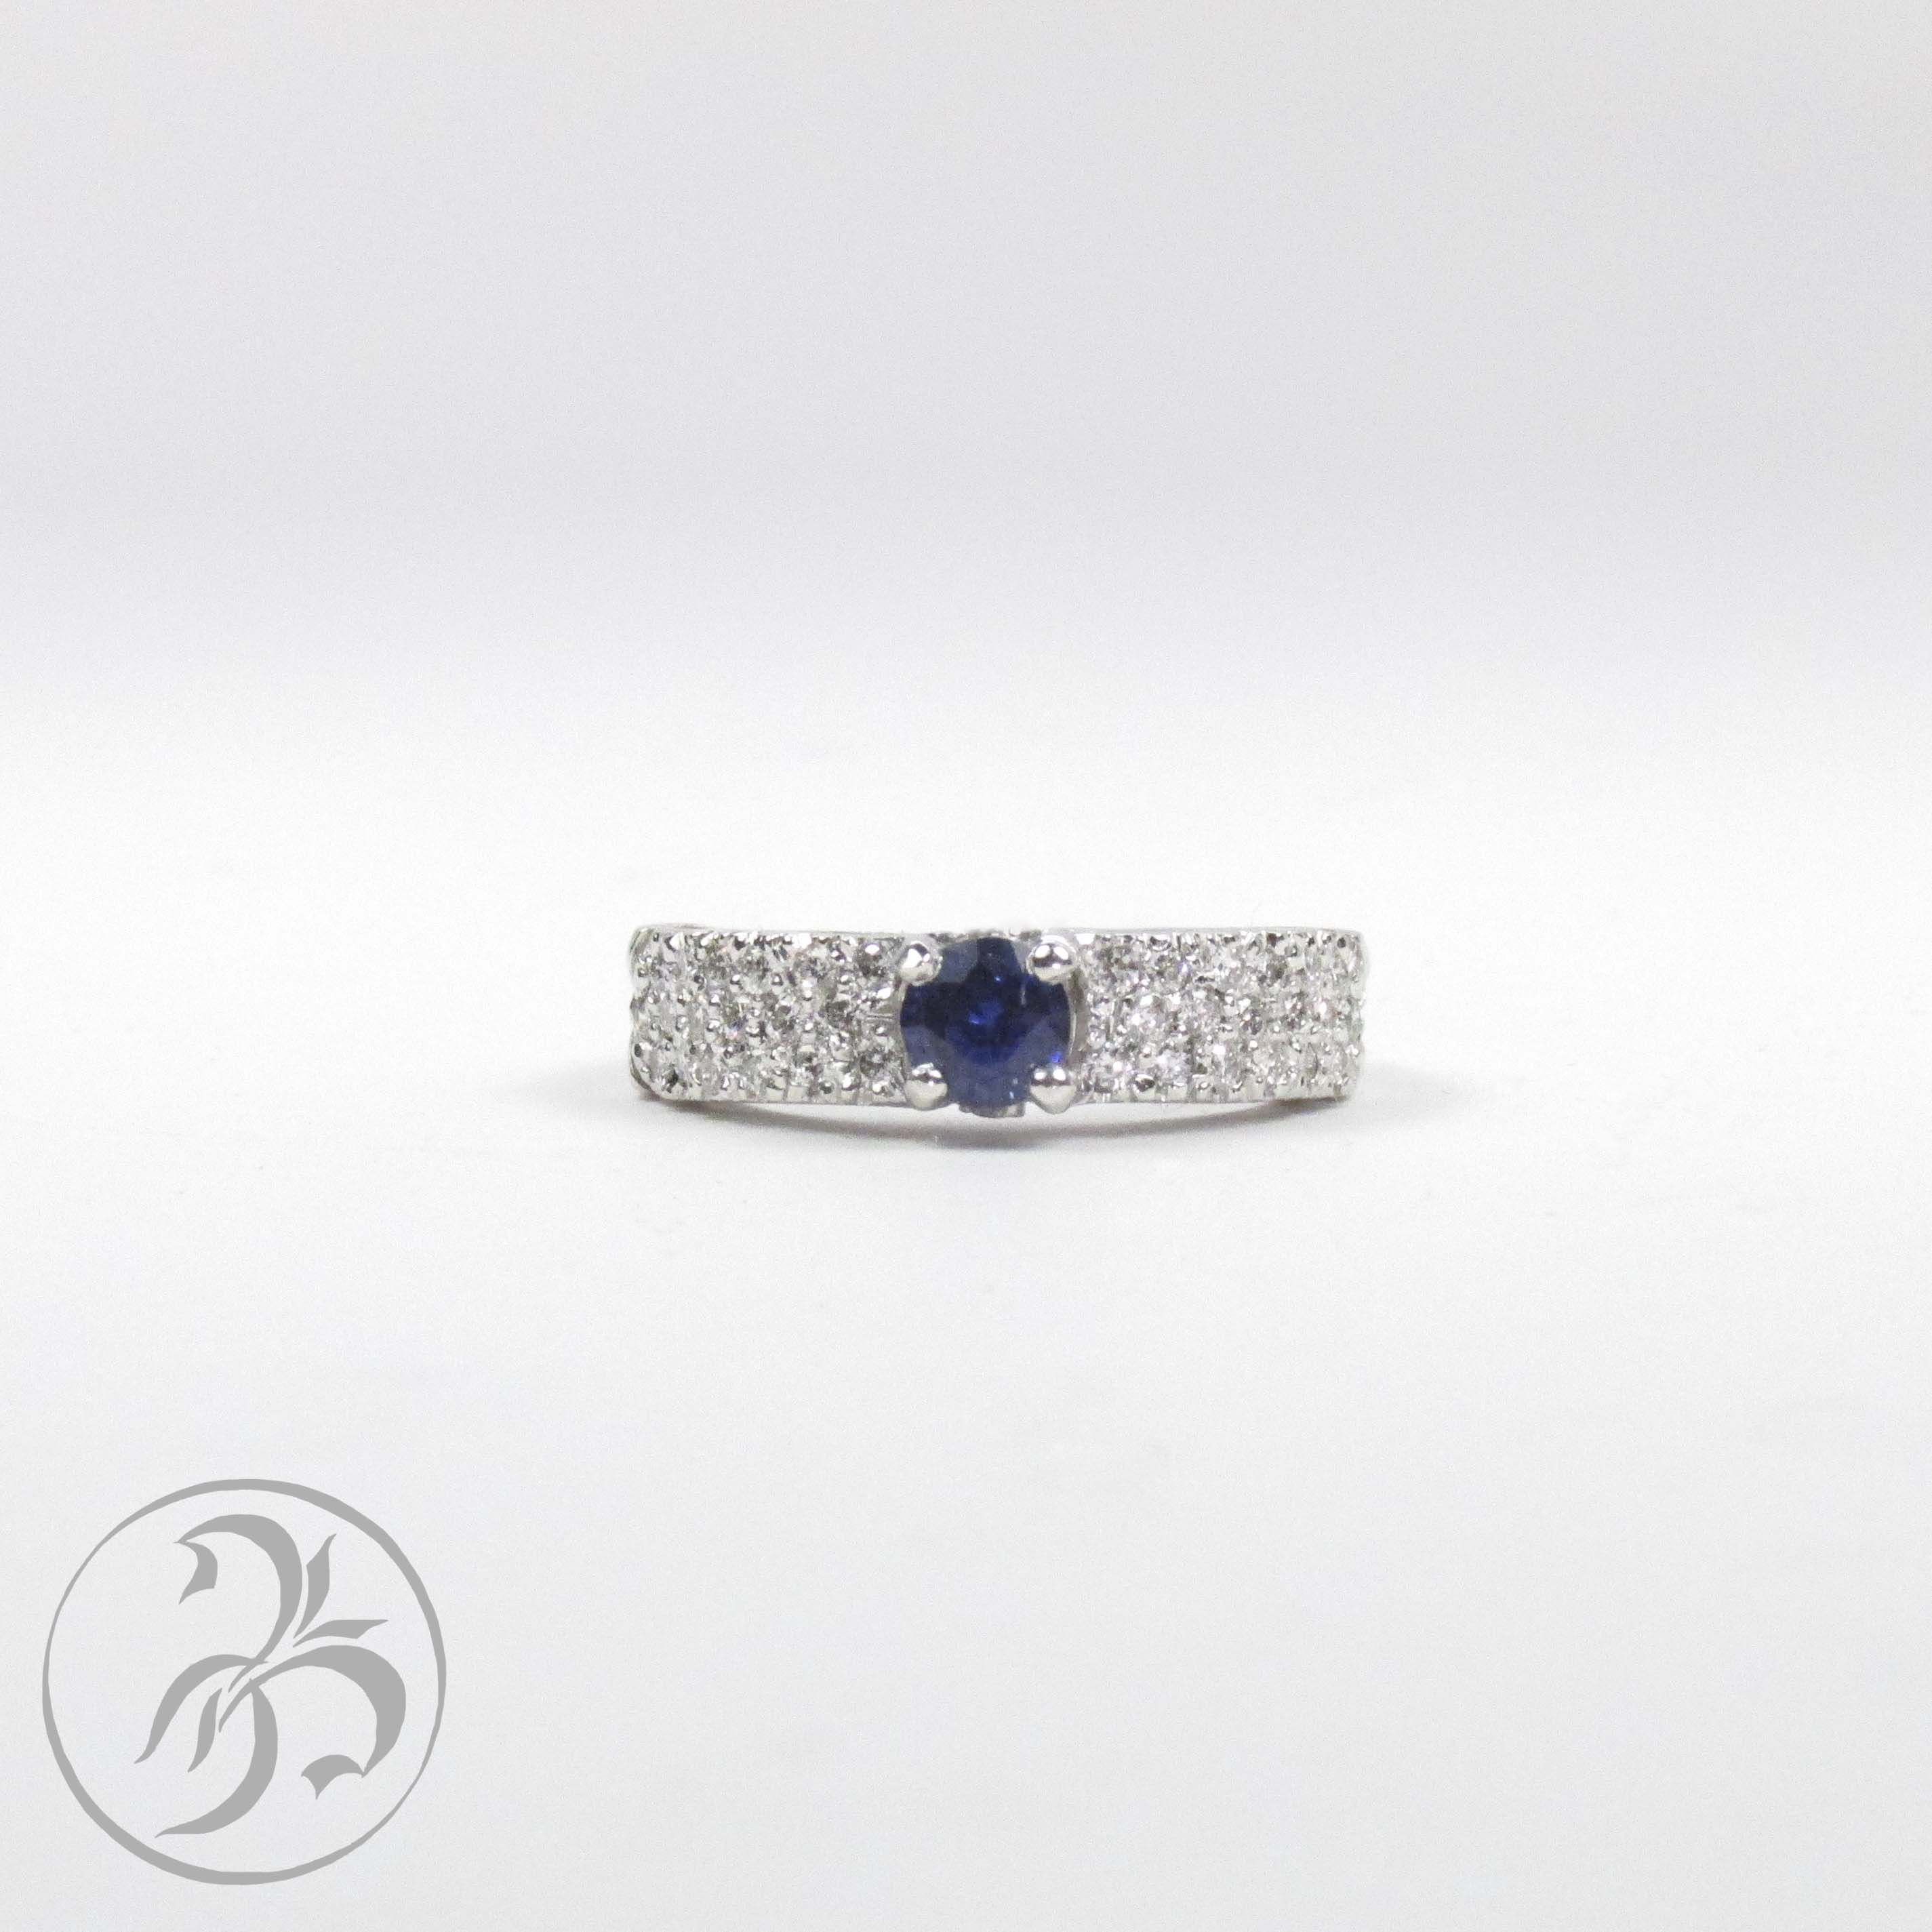 Sapphire and diamond pave ring.  Small, and great for everyday wear, this ring goes with everything! Custom created at Redford Jewelers in Salt Lake City